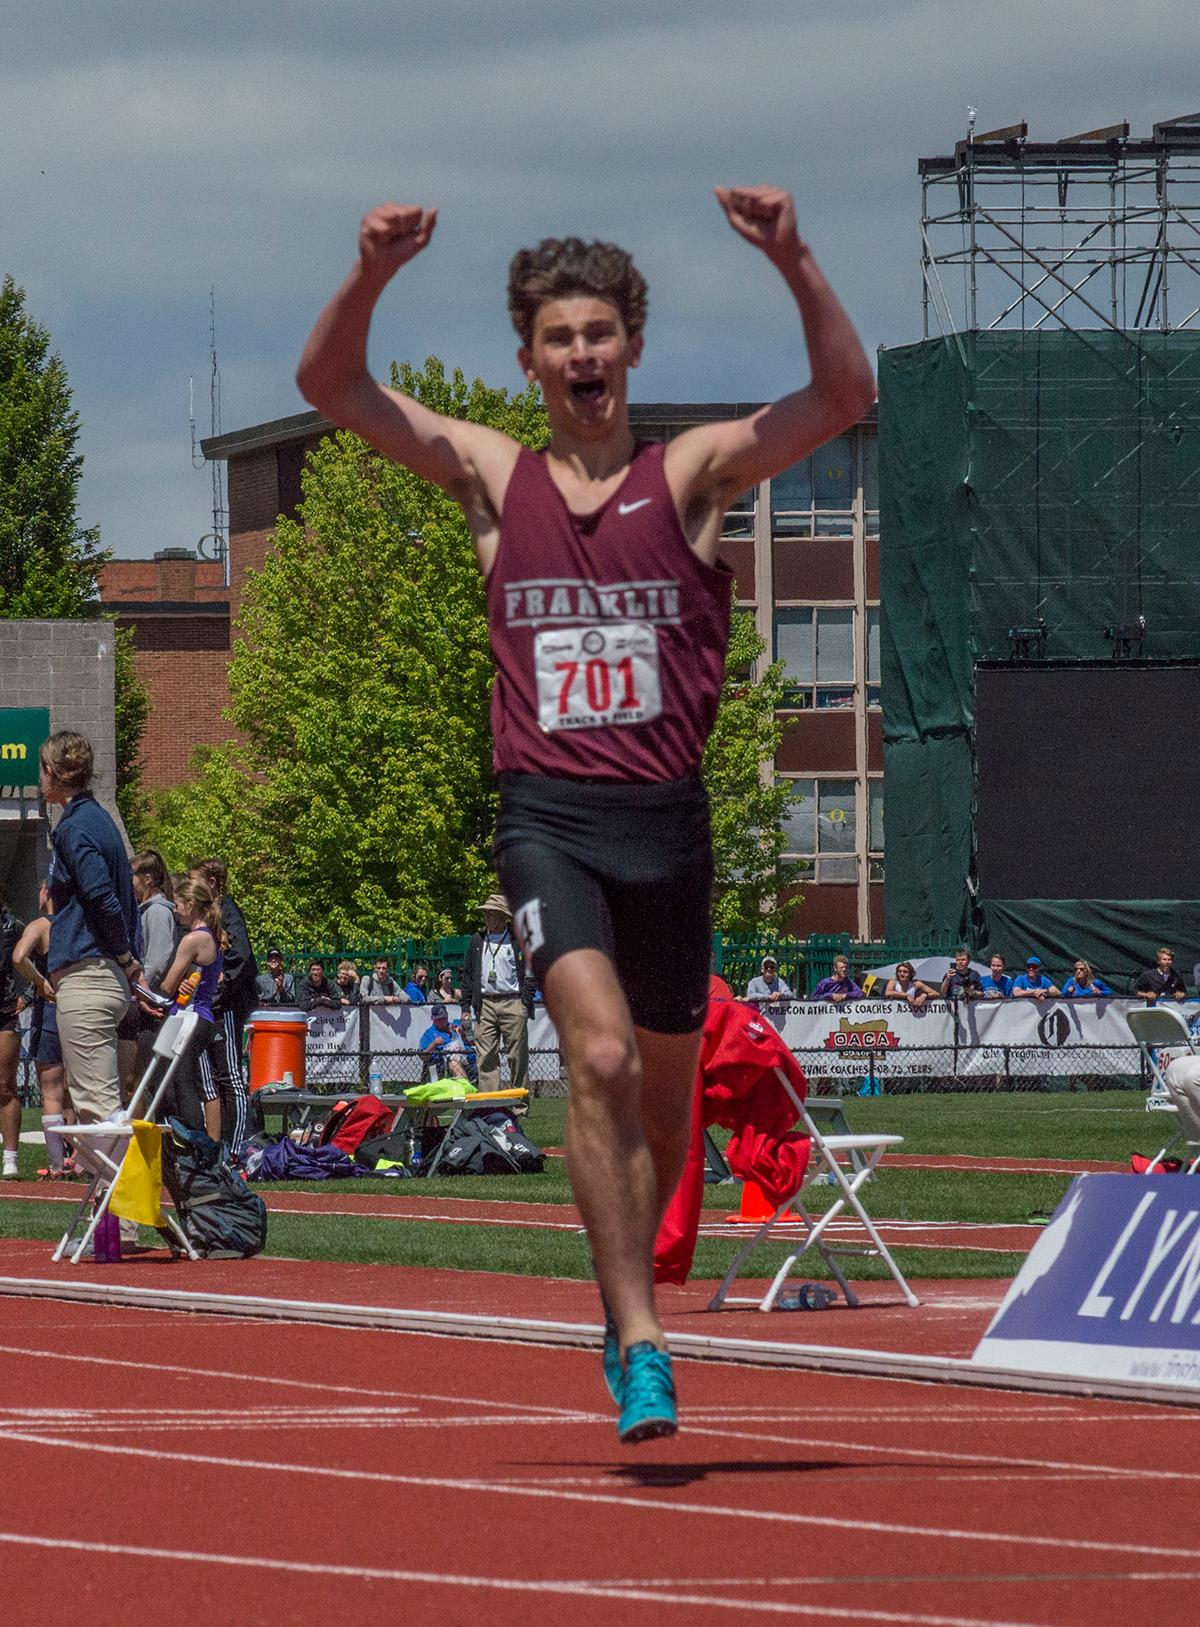 Henry Mong of Franklin High School celebrates victory as he crosses the finish line of the 6A Boys 1500 Meter race. Mong wins with a time of 3:50.52 at the OSAA Track and Field Championsips held at Hayward Field. Photo by Emily Gonzalez, Oregon News Lab.